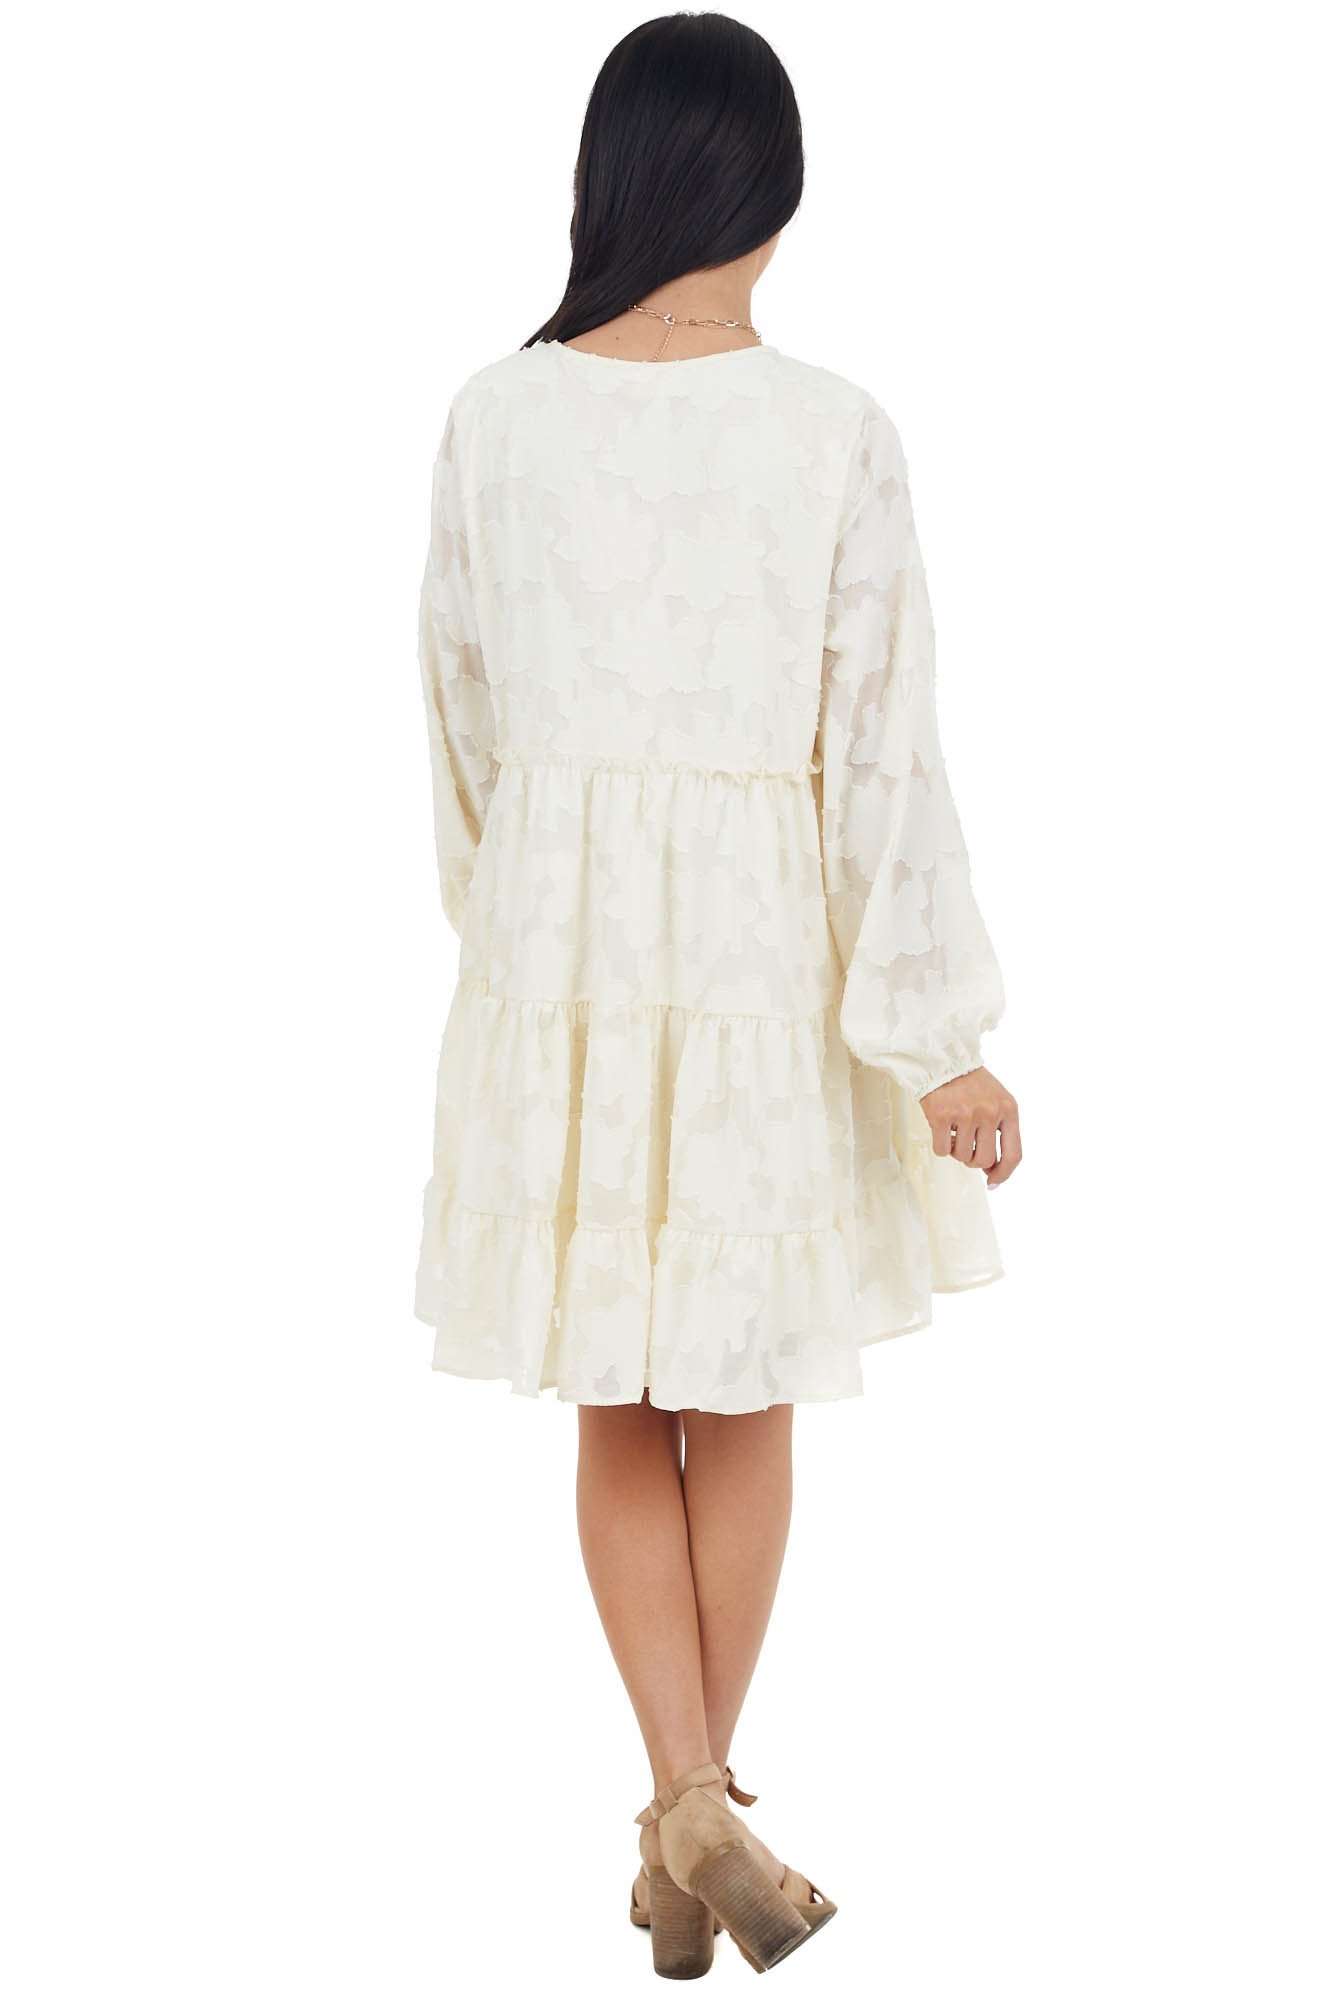 Cream Textured Print Tiered Babydoll Dress with Long Sleeves